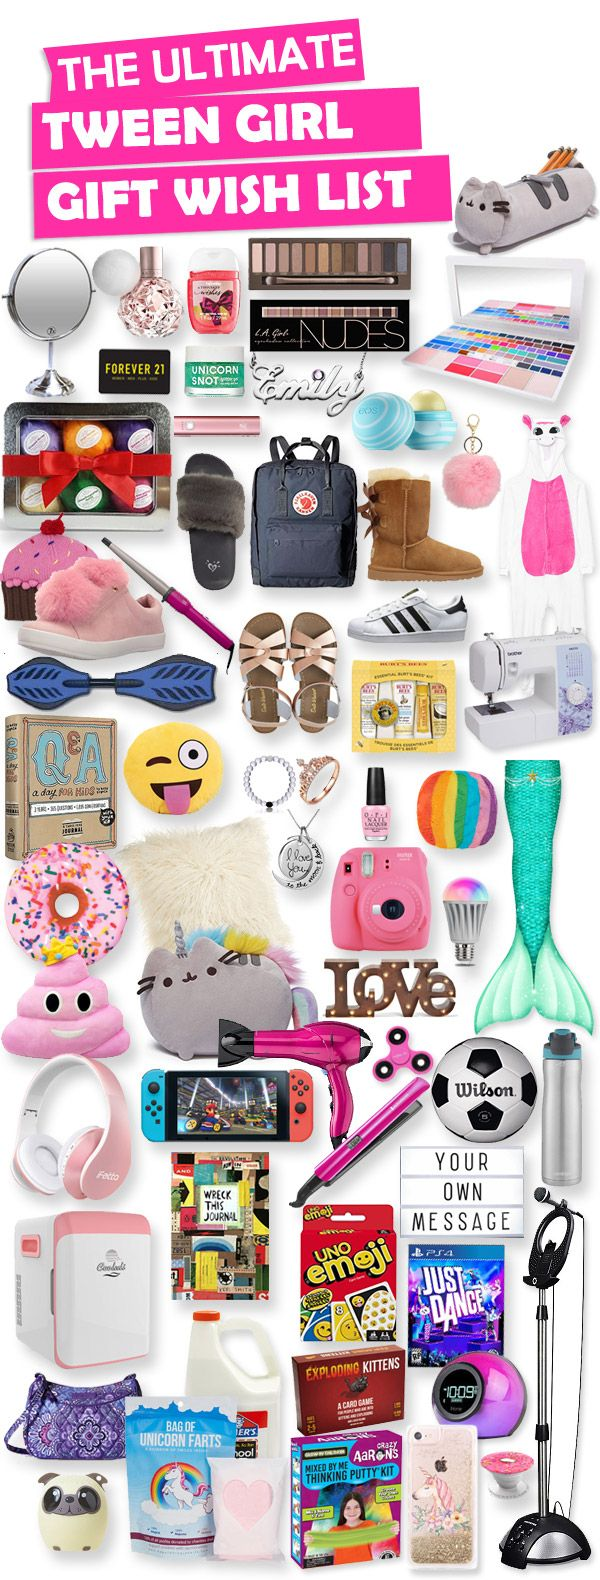 Gifts For Tween Girls | Gifts For Tween Girls | Christmas, Gifts ...